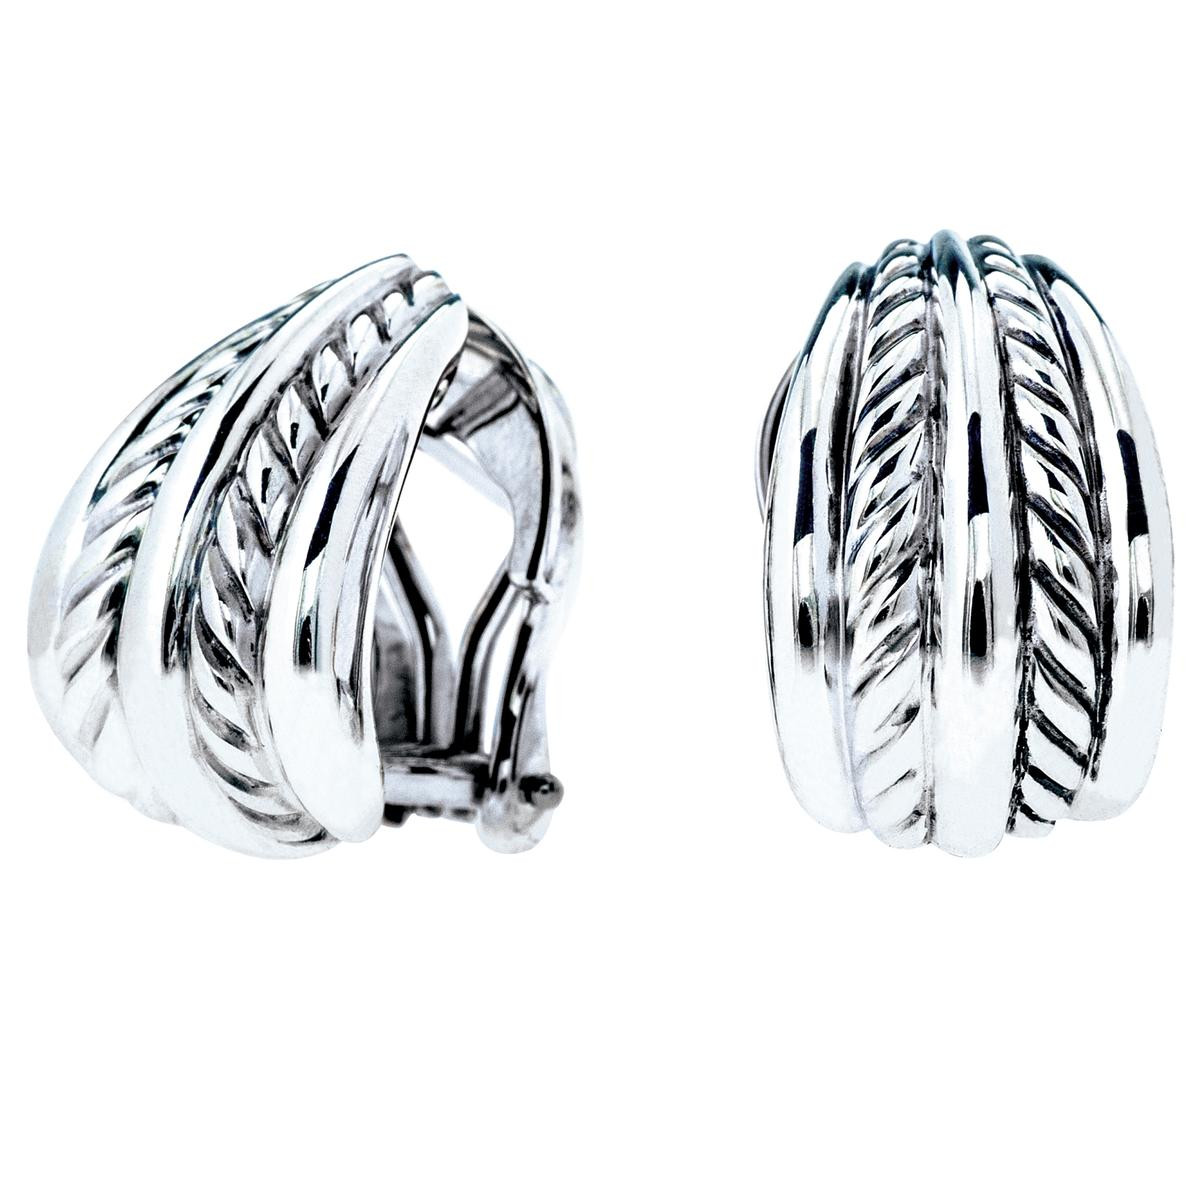 Vintage David Yurman Thoroughbred Cable Earrings Gallery Image